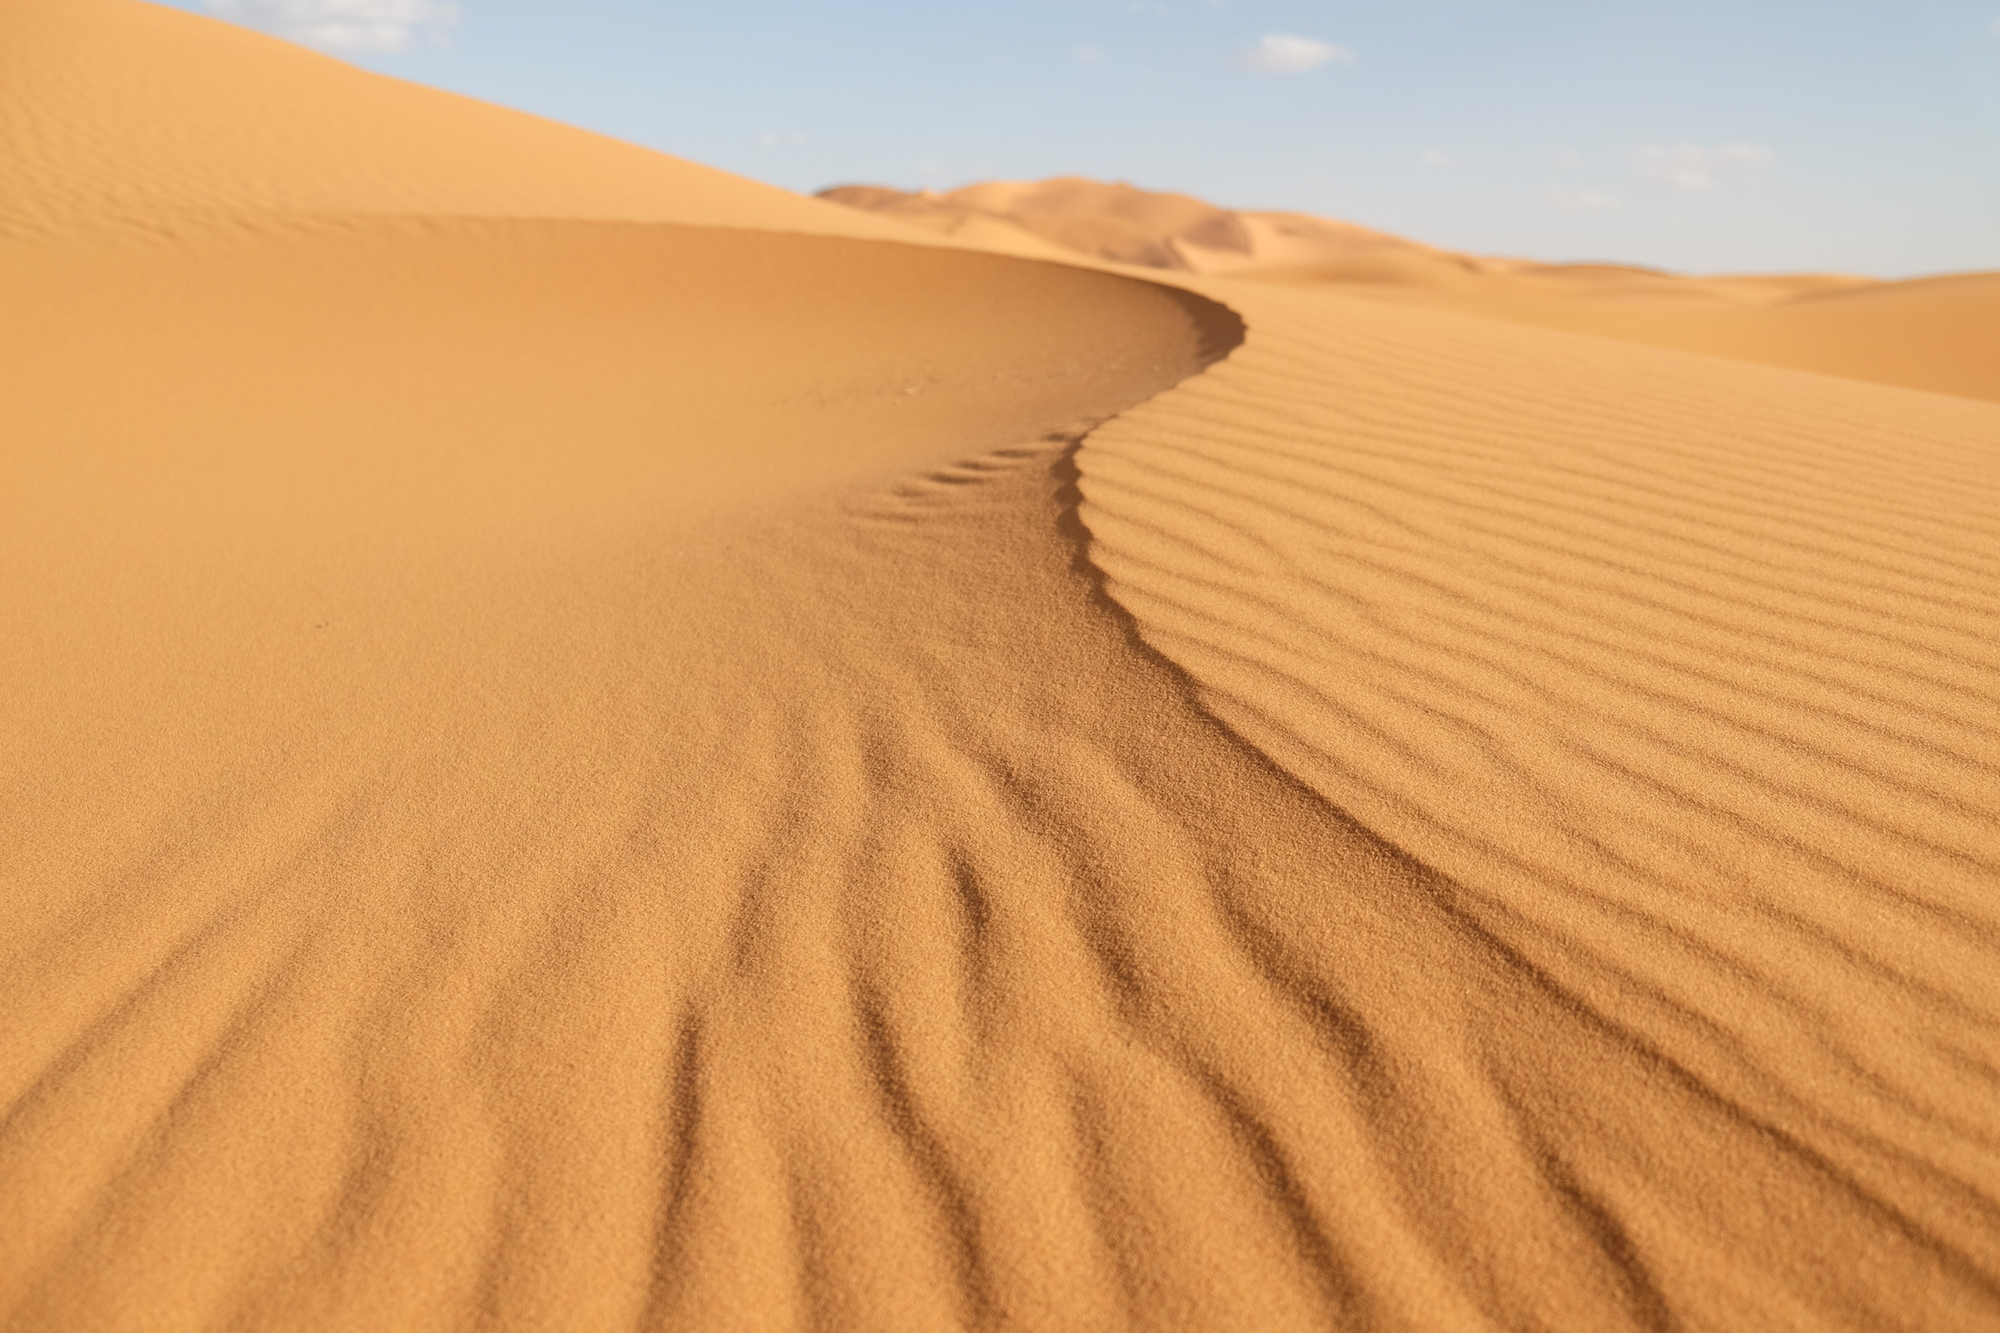 The normally heavily shadowed curves, dips, hills, and valleys of the Sahara became soft, shadow-less twists and turns.